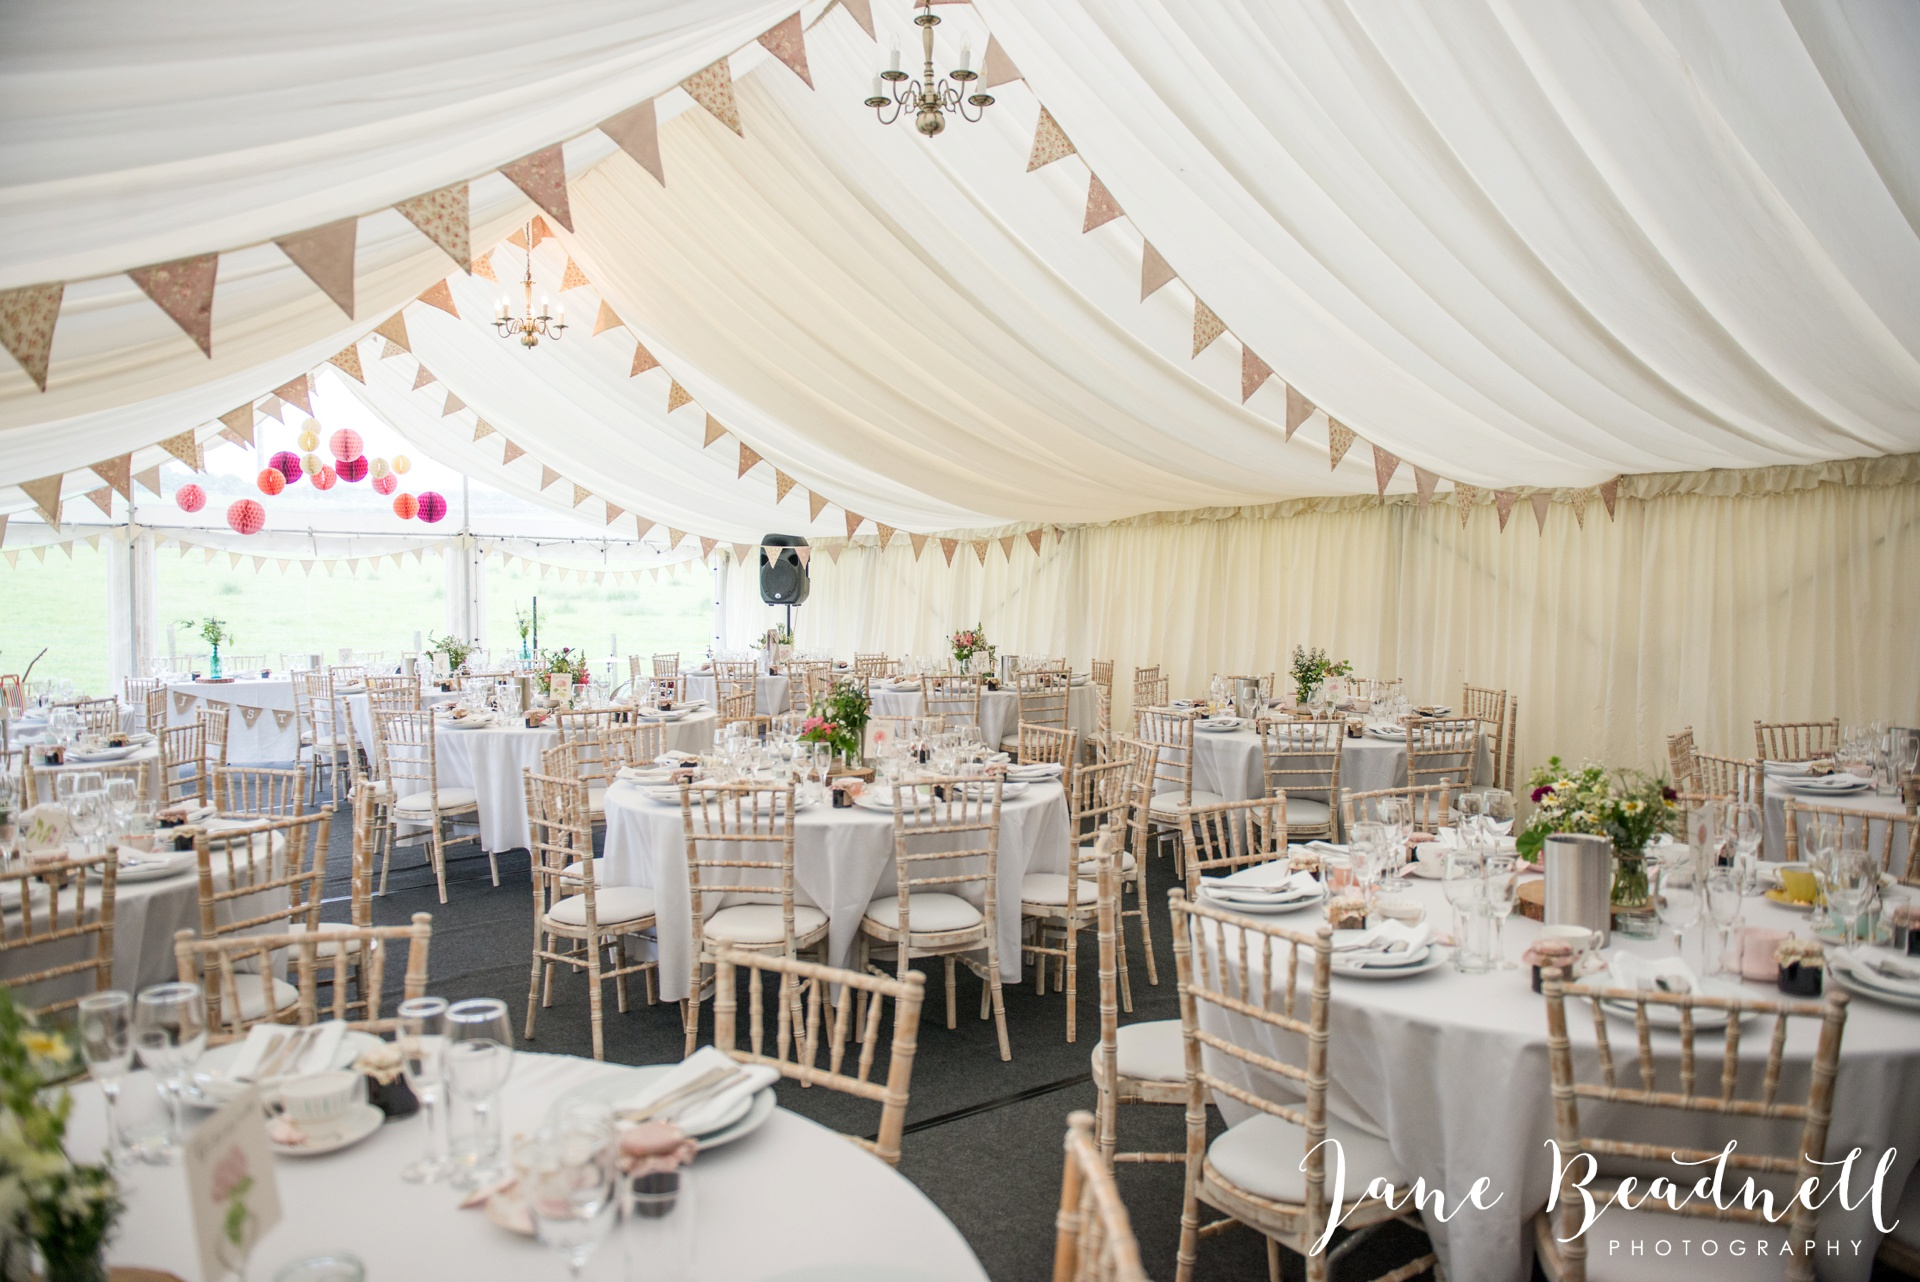 Yorkshire Wedding Photography the cheerful Chilli Barn Wedding by Jane Beadnell Photography_0108